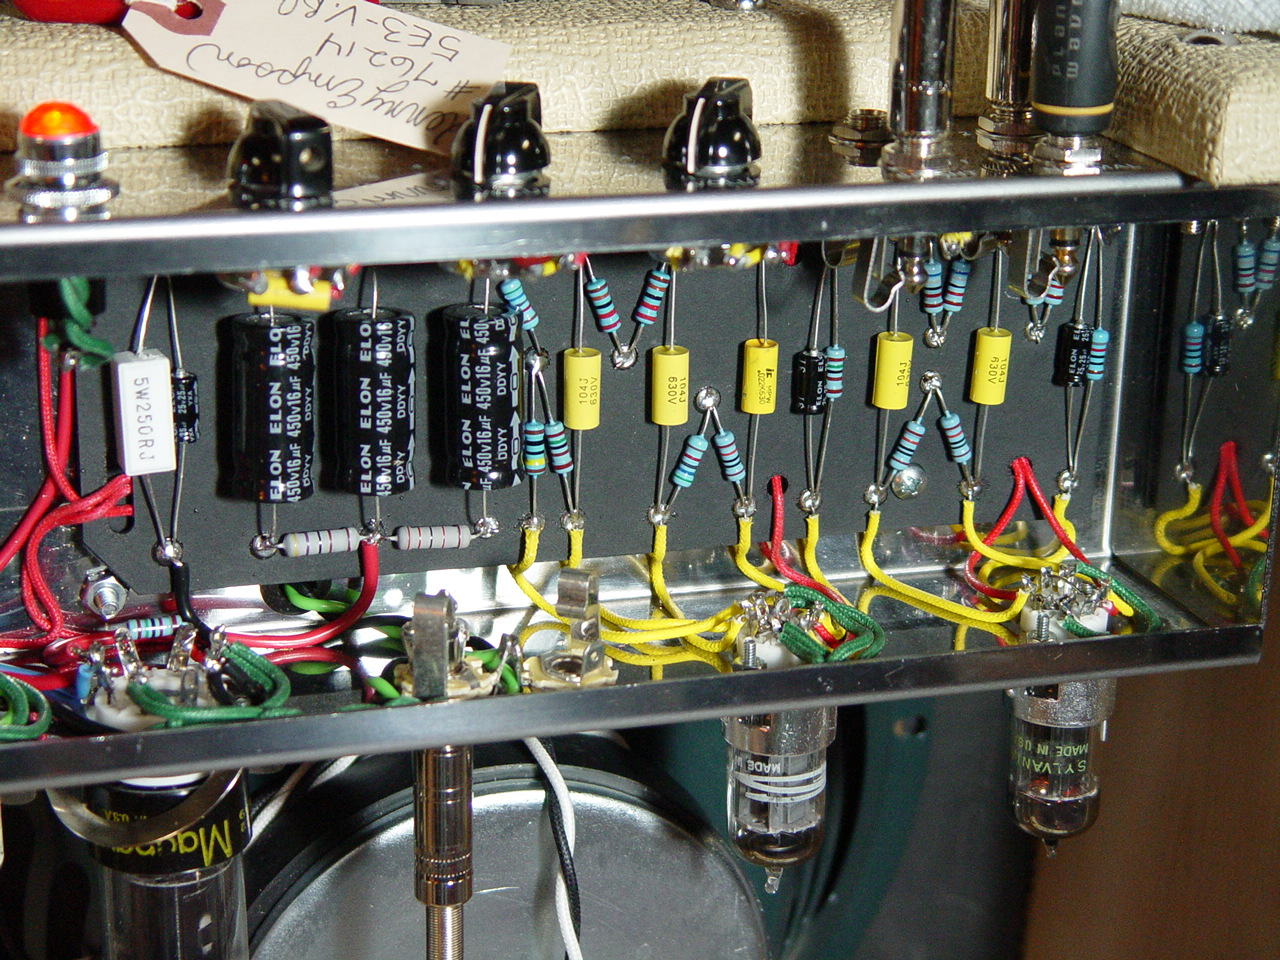 Dodgy Sensor Wiring moreover Multi Drop Fiber Optic Multiplexer Self Healing Ring likewise Weber 503 Tweed Deluxe Kit moreover Pick And Design A Pv System together with Electrical Wiring For Your Home. on wiring circuits